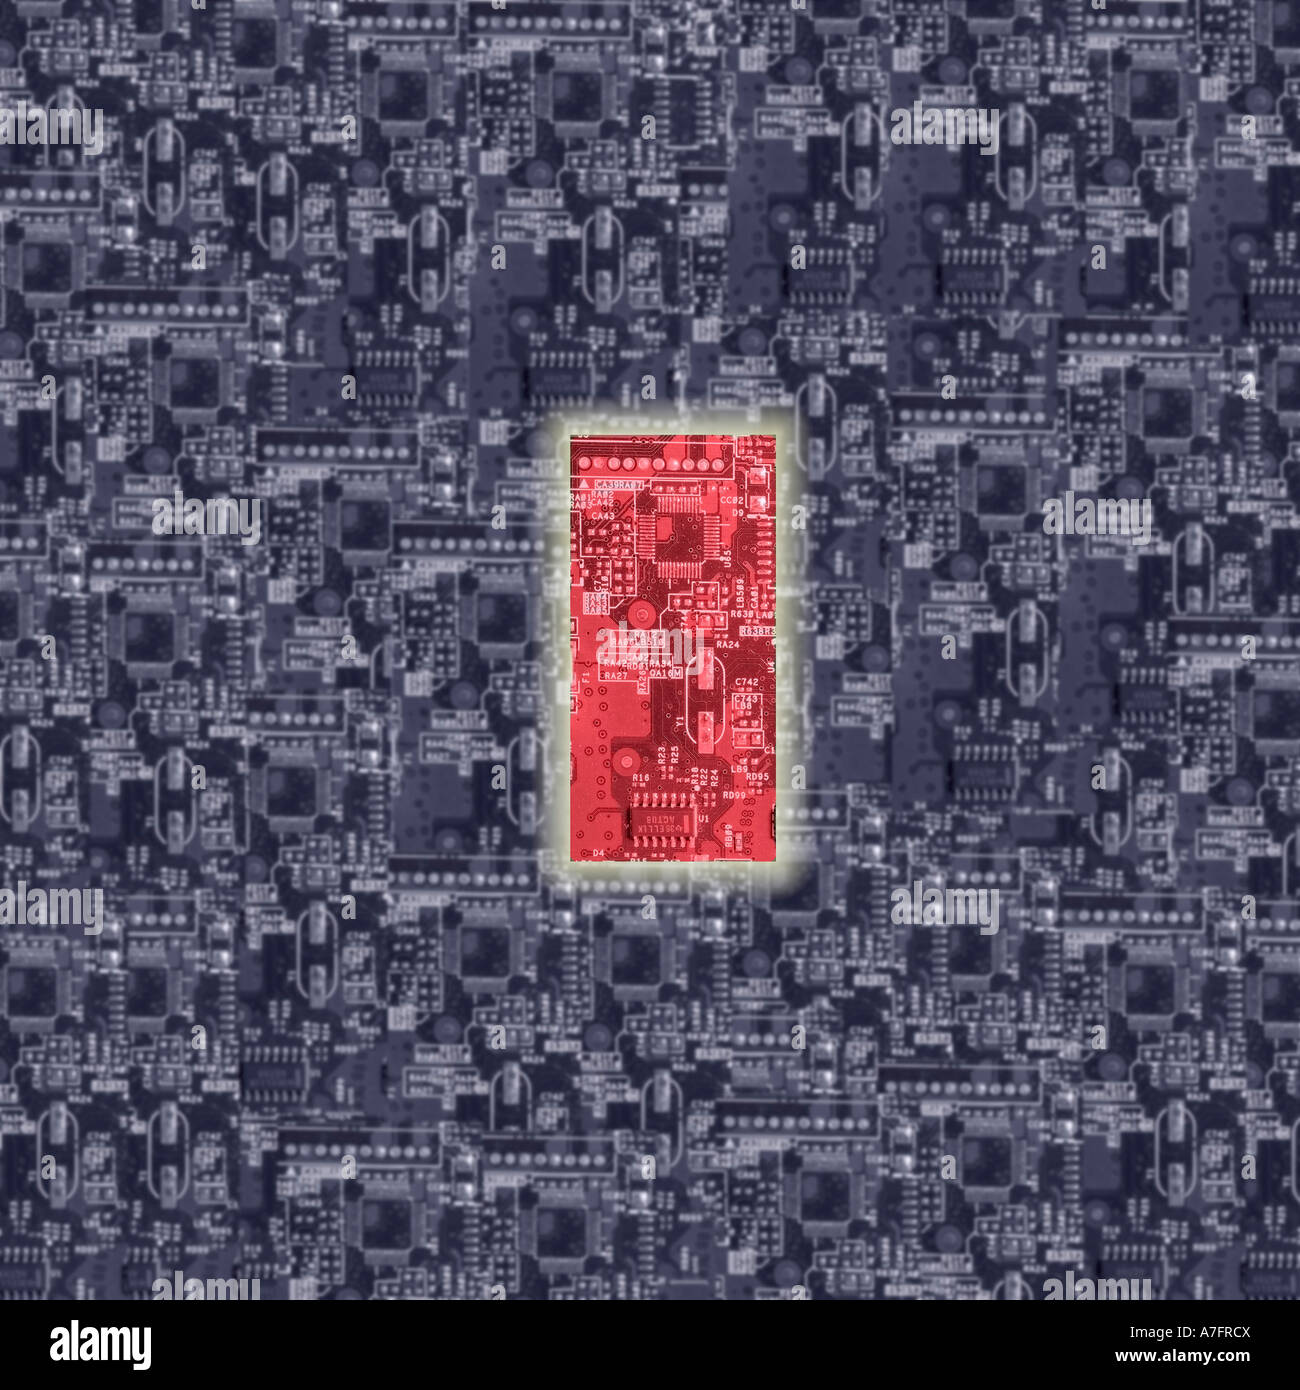 Electronic Circuit Board Processor Top Stock Photos Gstudio Group Boards Design Motherboard Dreamstime Pcb One Red Superimposed On A Of Below Image